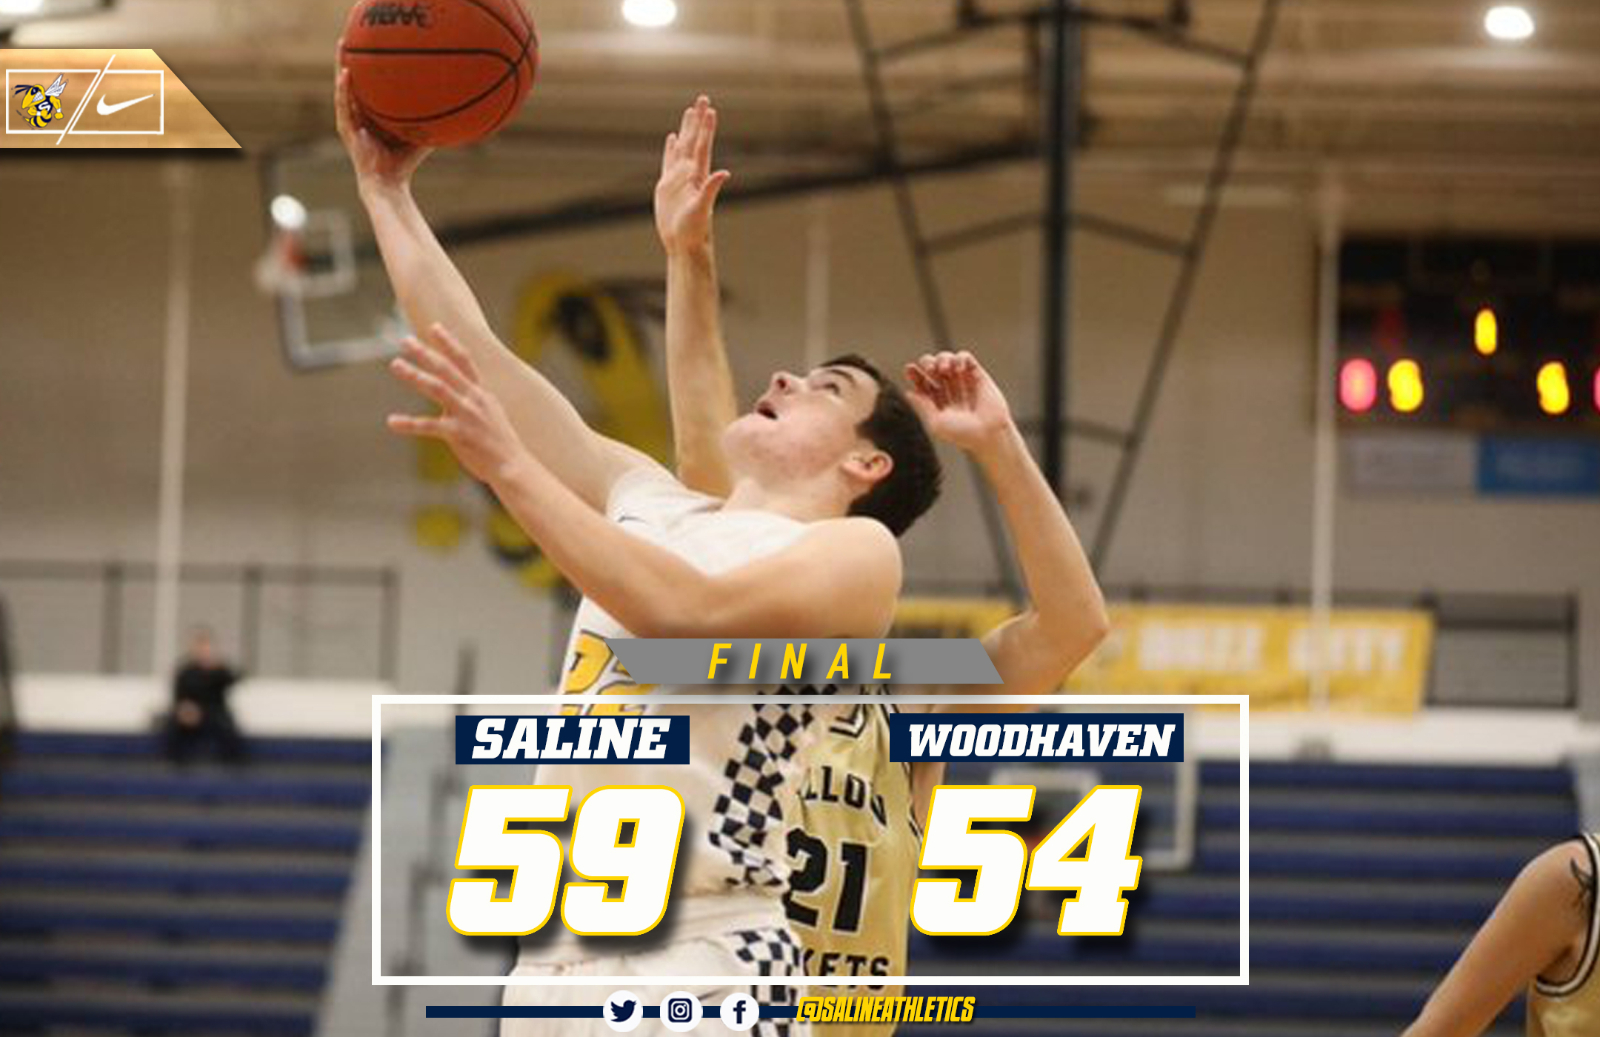 @TheSalinePost: Arico Scores 33 as Saline Defeats Woodhaven in Overtime